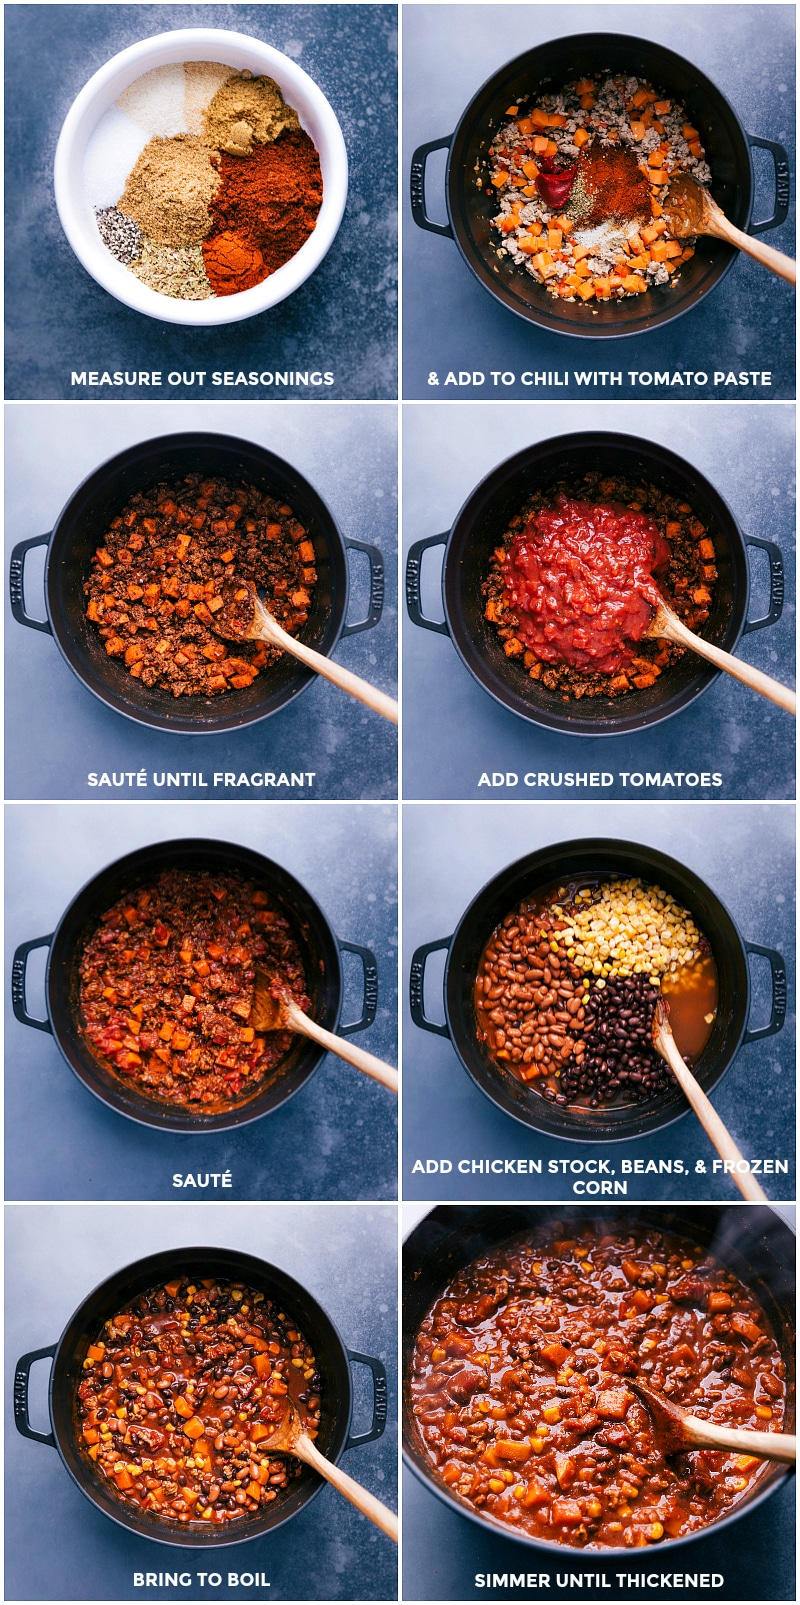 Process shots: adding the spices and tomatoes to the pan; adding stock, beans and corn; simmering until thick and tender.